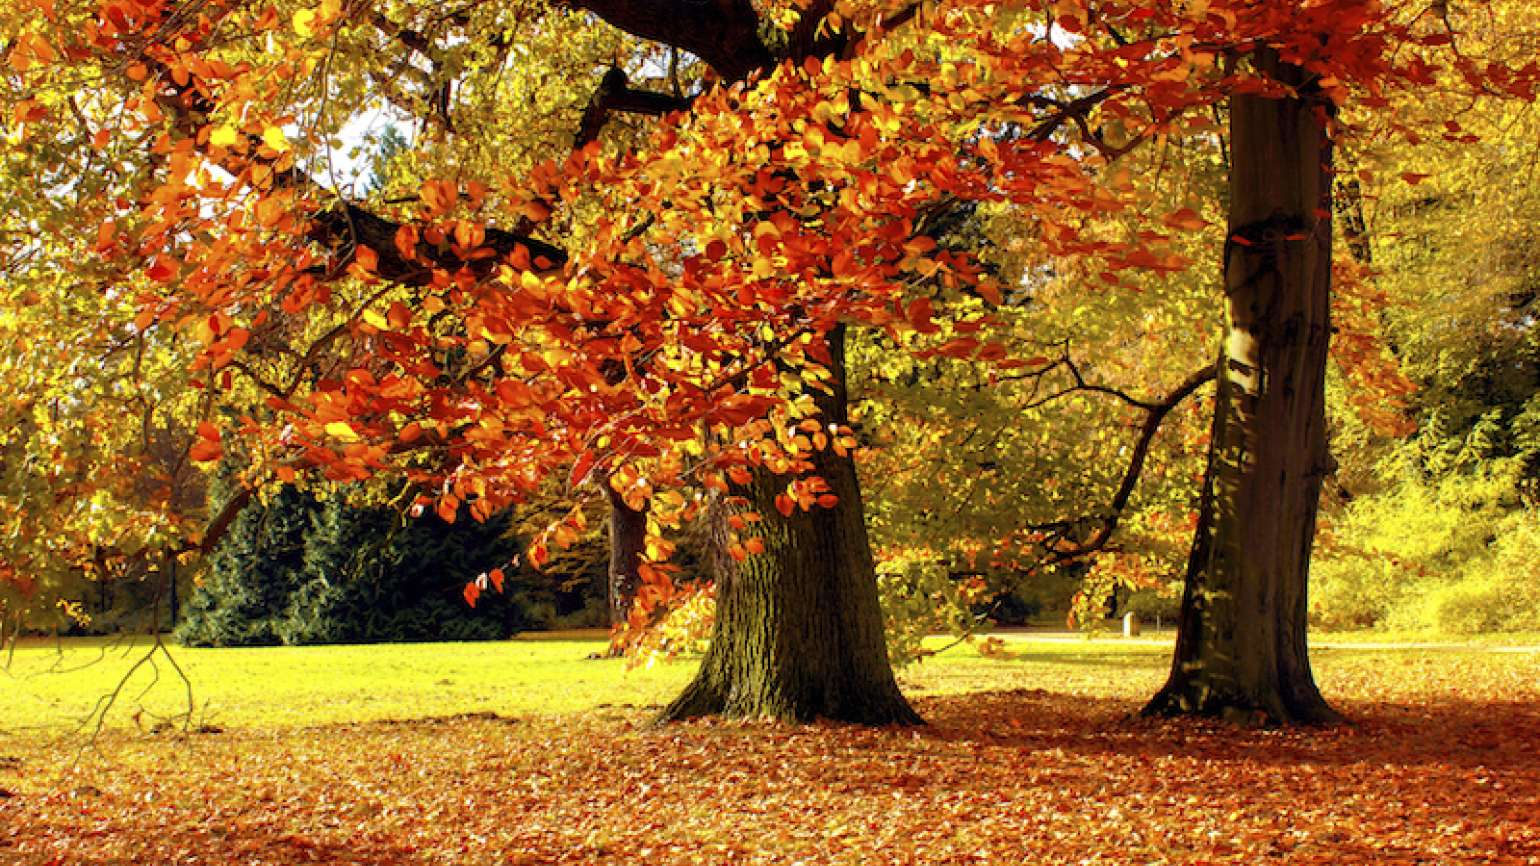 Trees with their autumn leaves